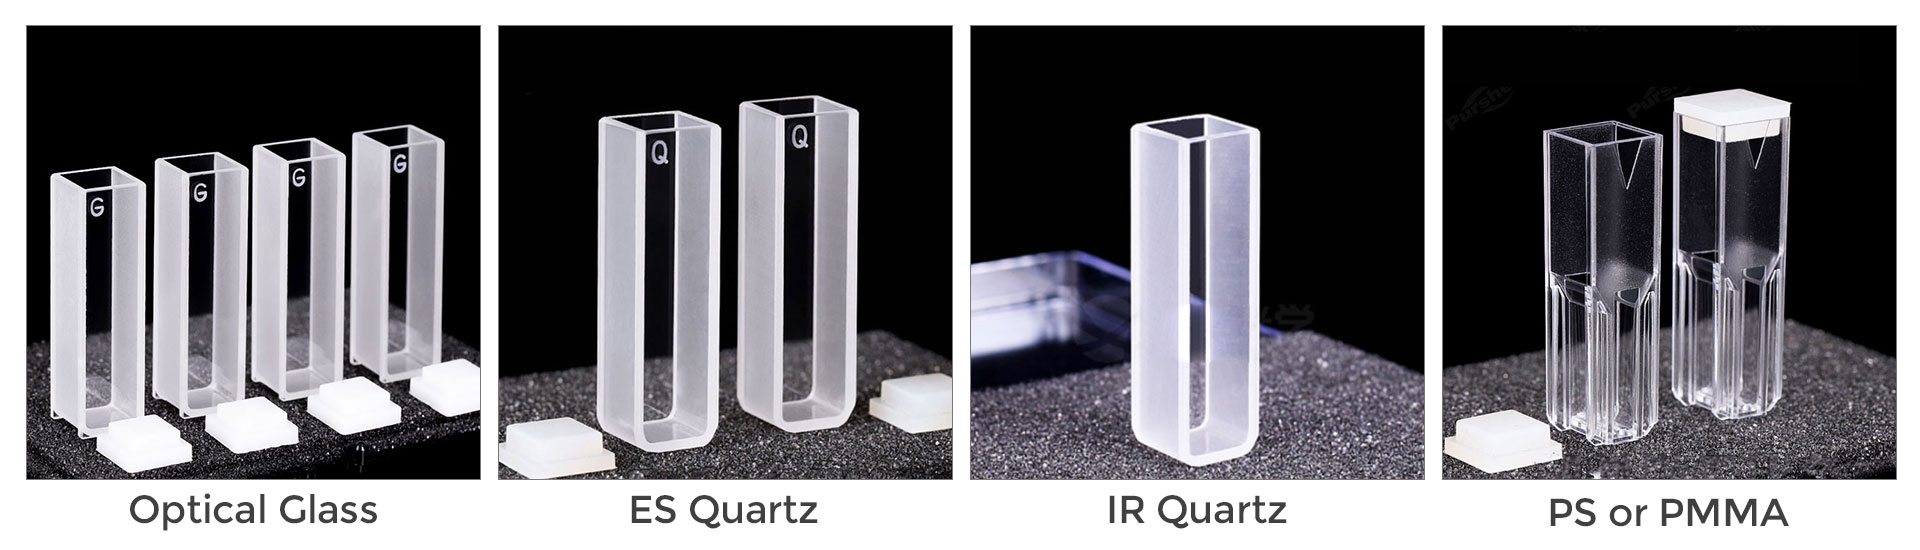 Different Cuvette Material Product Comparision